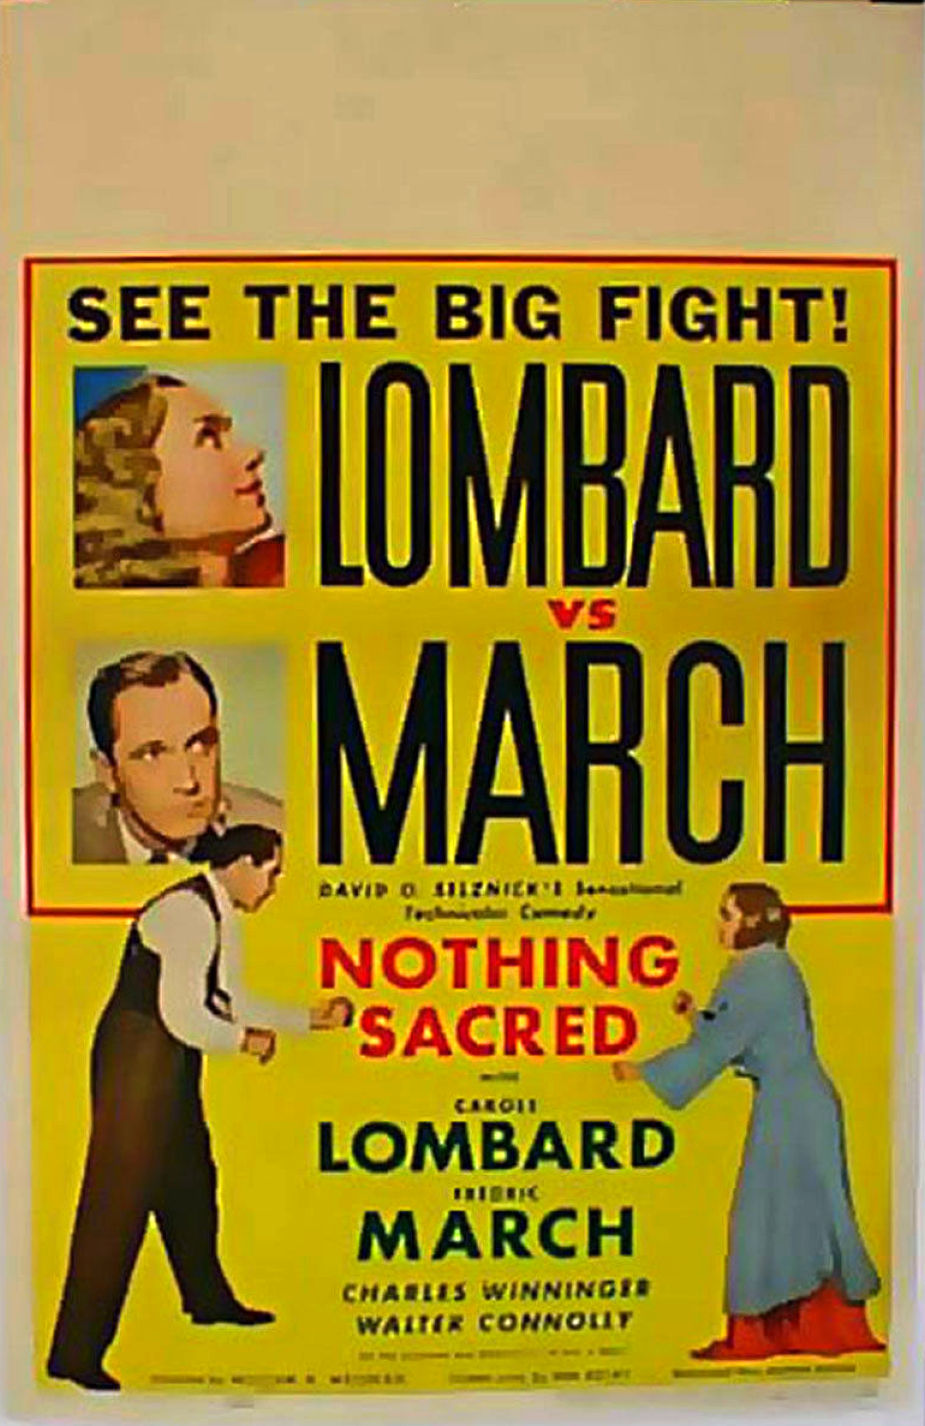 carole lombard nothing sacred poster 02a